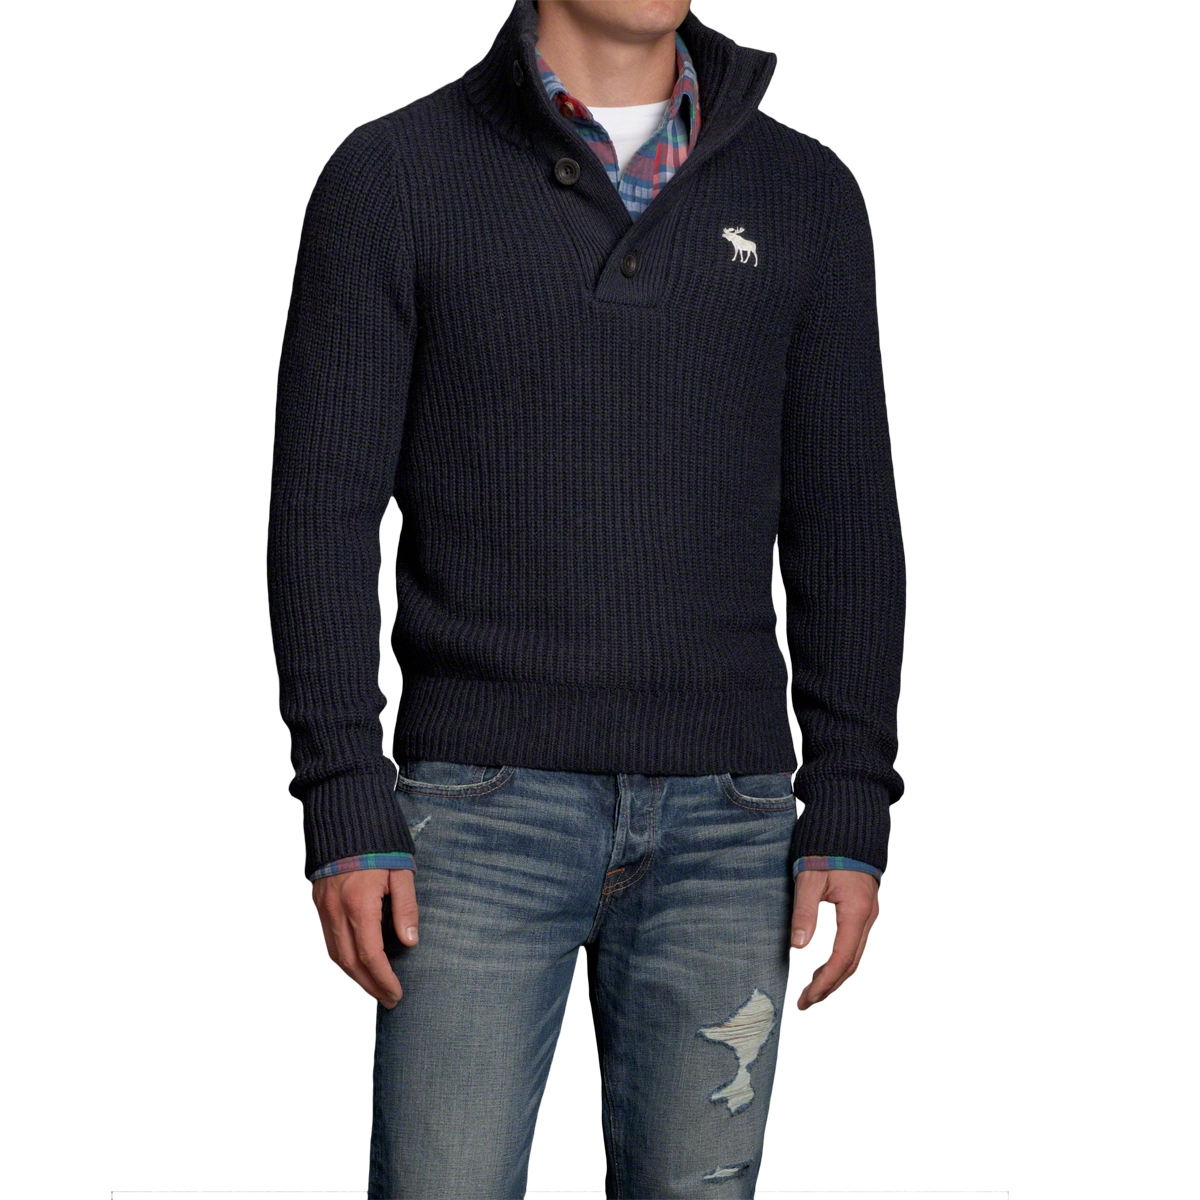 Abercrombie and fitch sweater men s